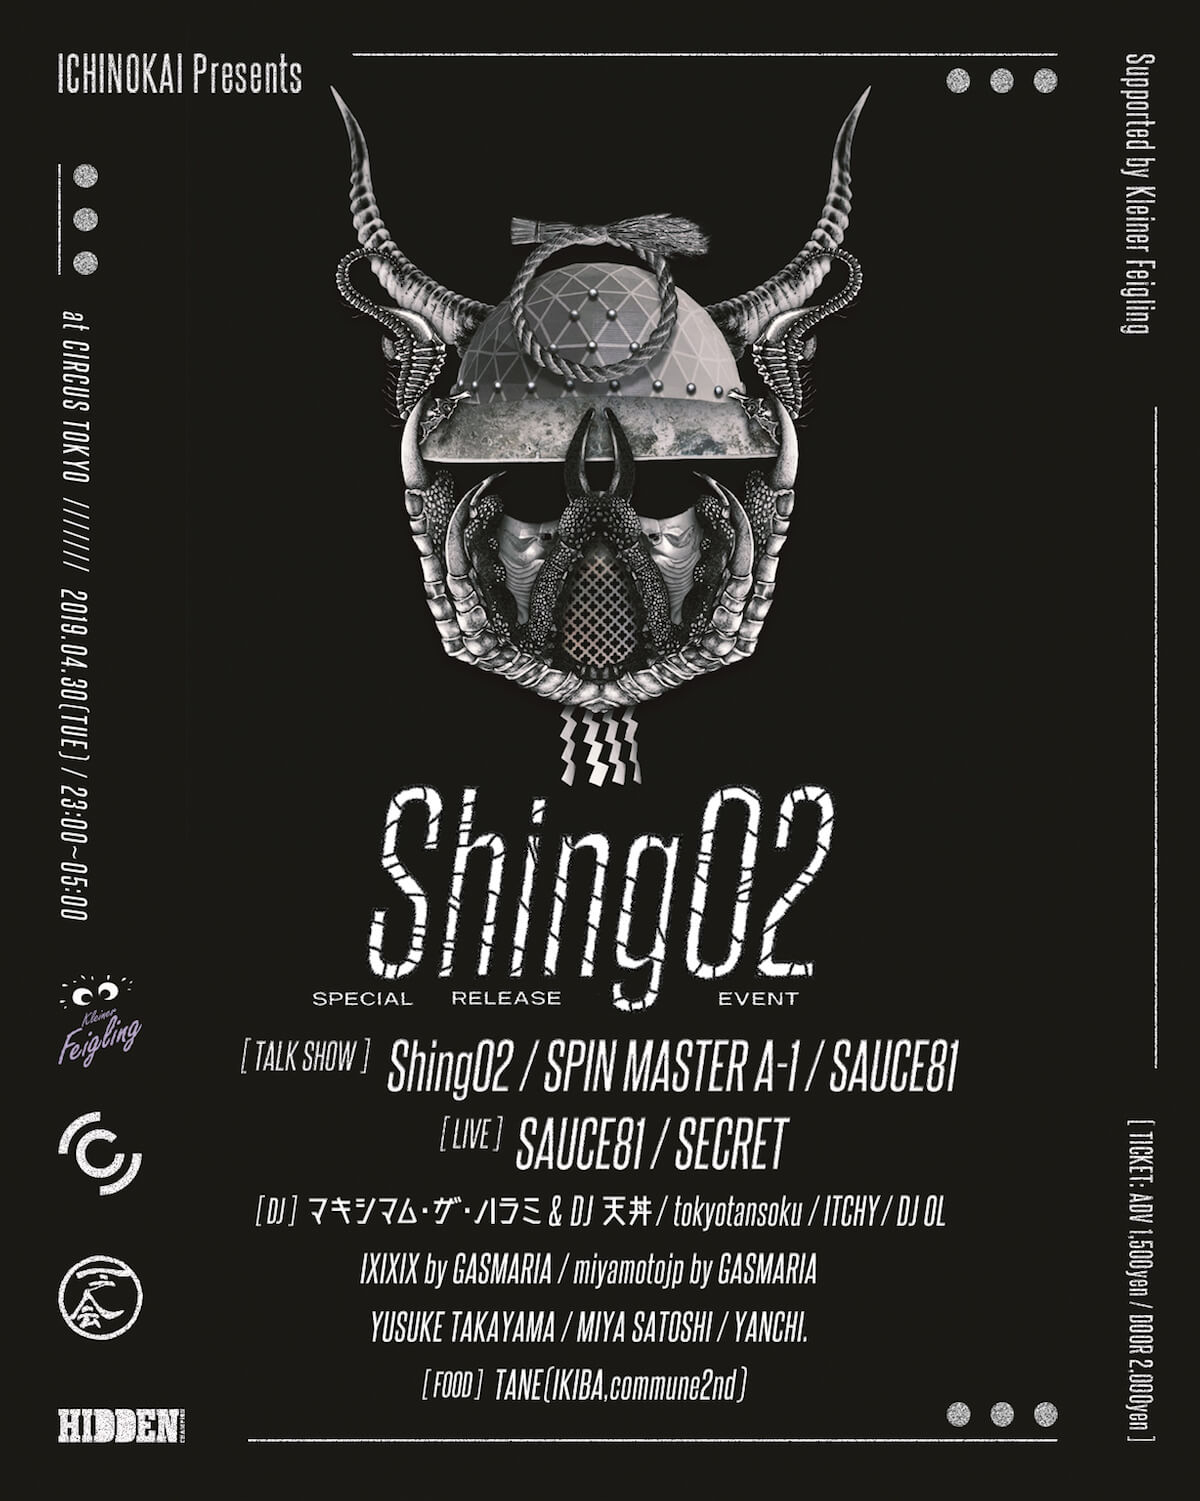 Shing02、約10年半ぶりのアルバムリリースを記念したイベントが開催 Shing02、SPIN MASTER A-1、ICHINOKAIのトークショーなども shing02-special-release-event-supported-by-ichinokai-190427